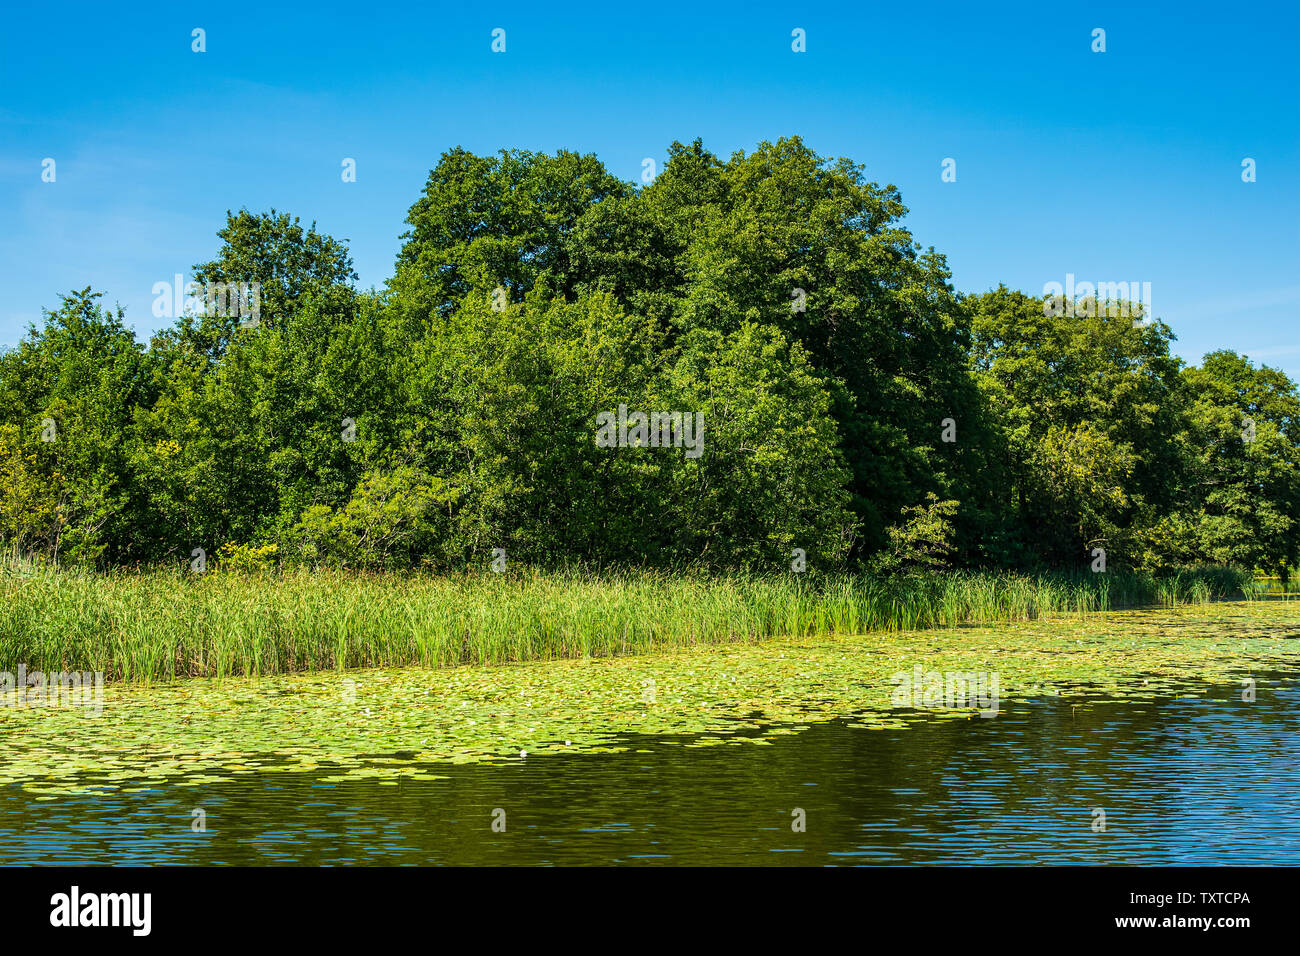 Landscape on a lake in Templin, Germany. - Stock Image